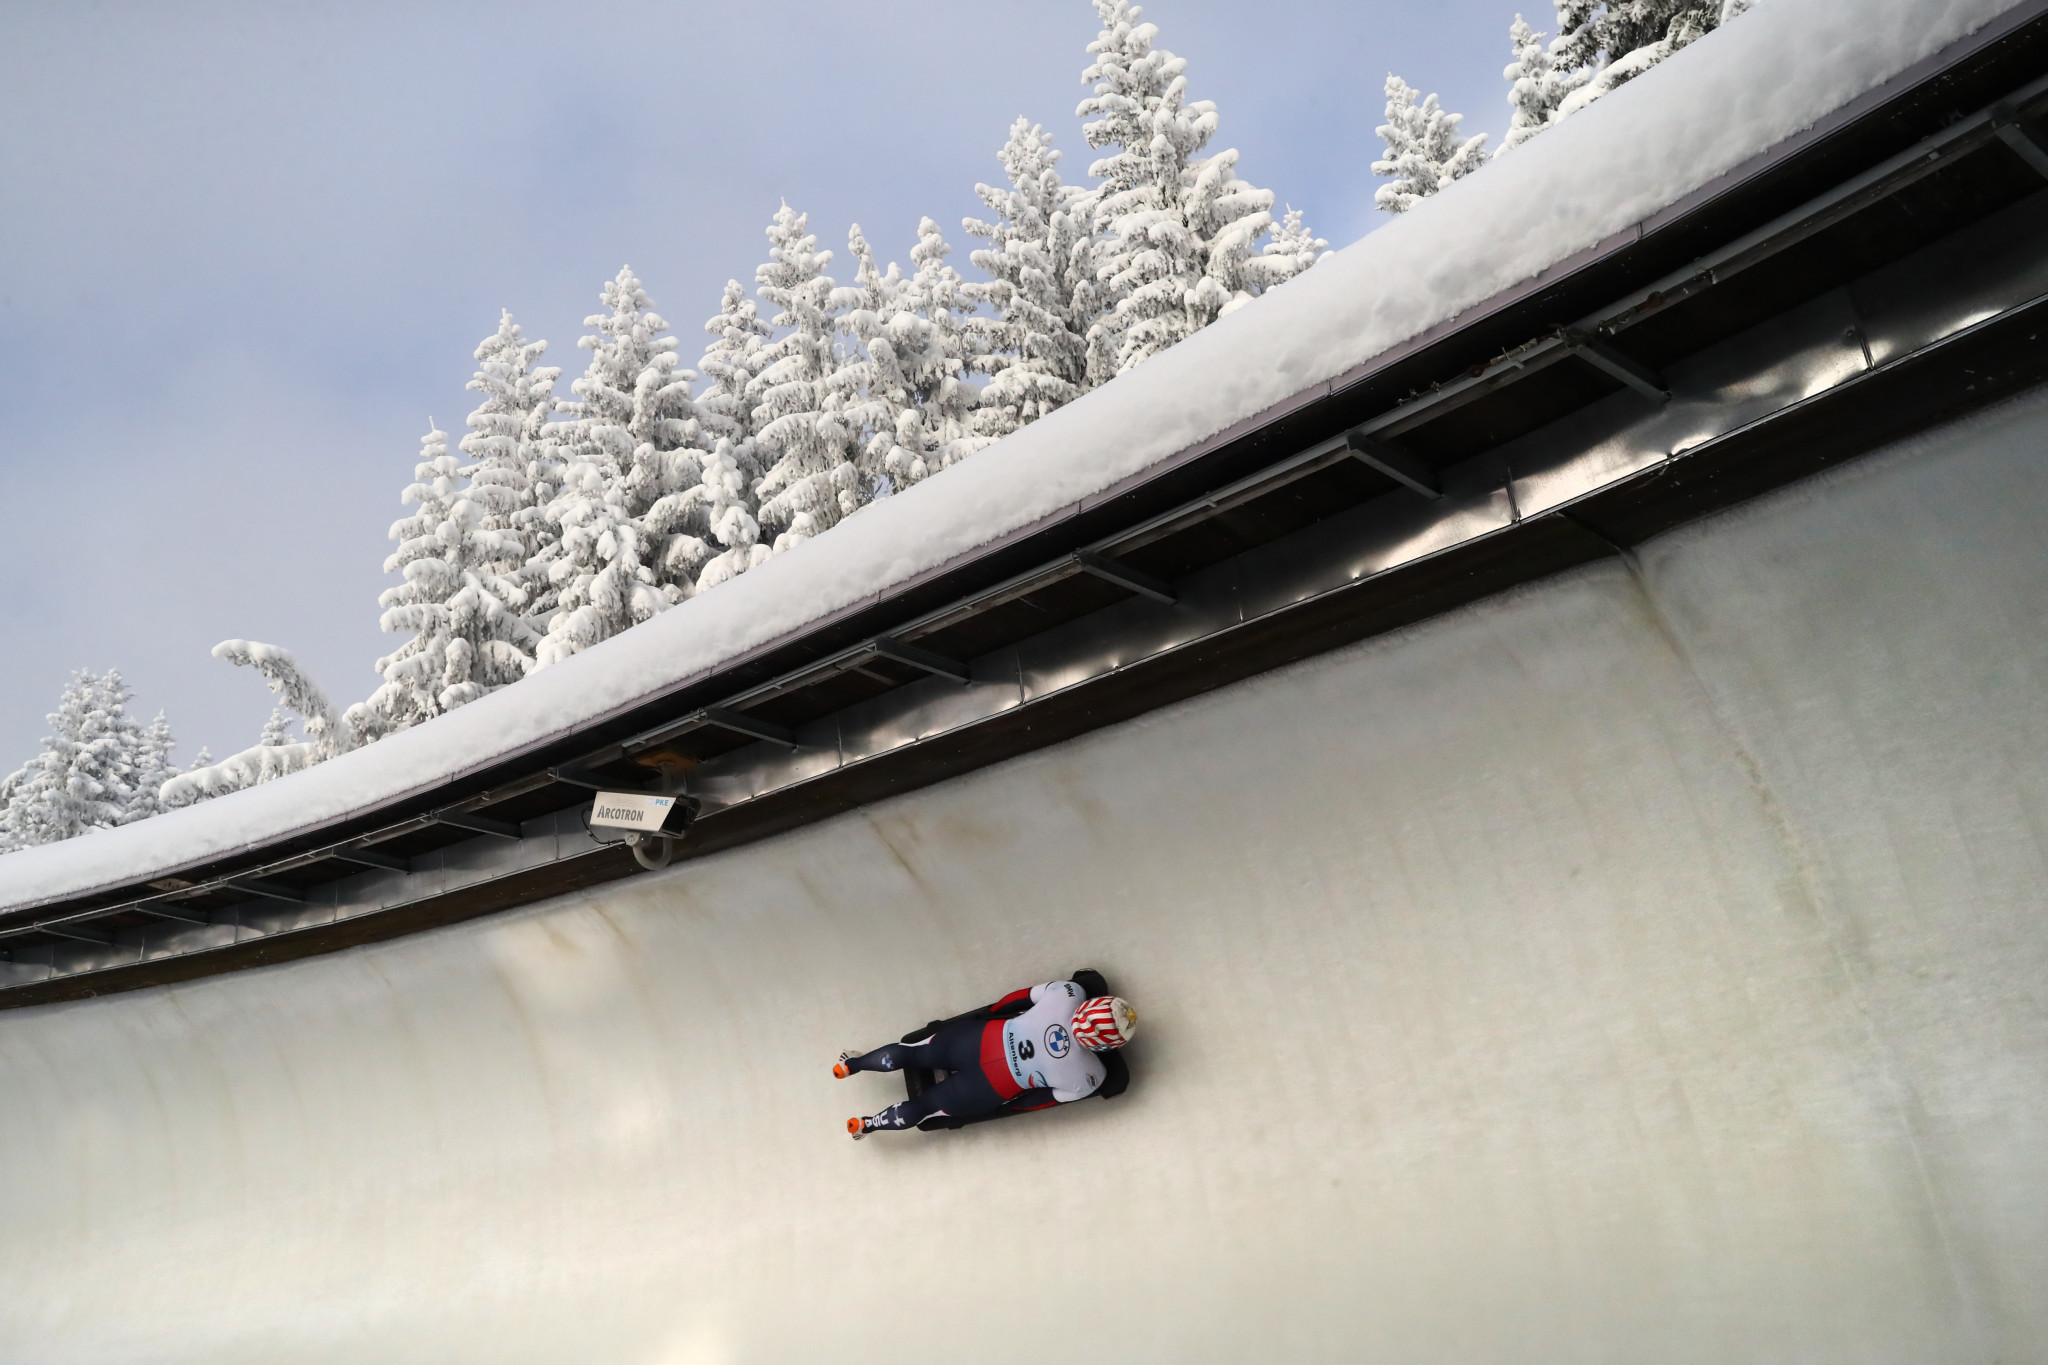 USA Bobsled and Skeleton partner with TeachAids to provide concussion education